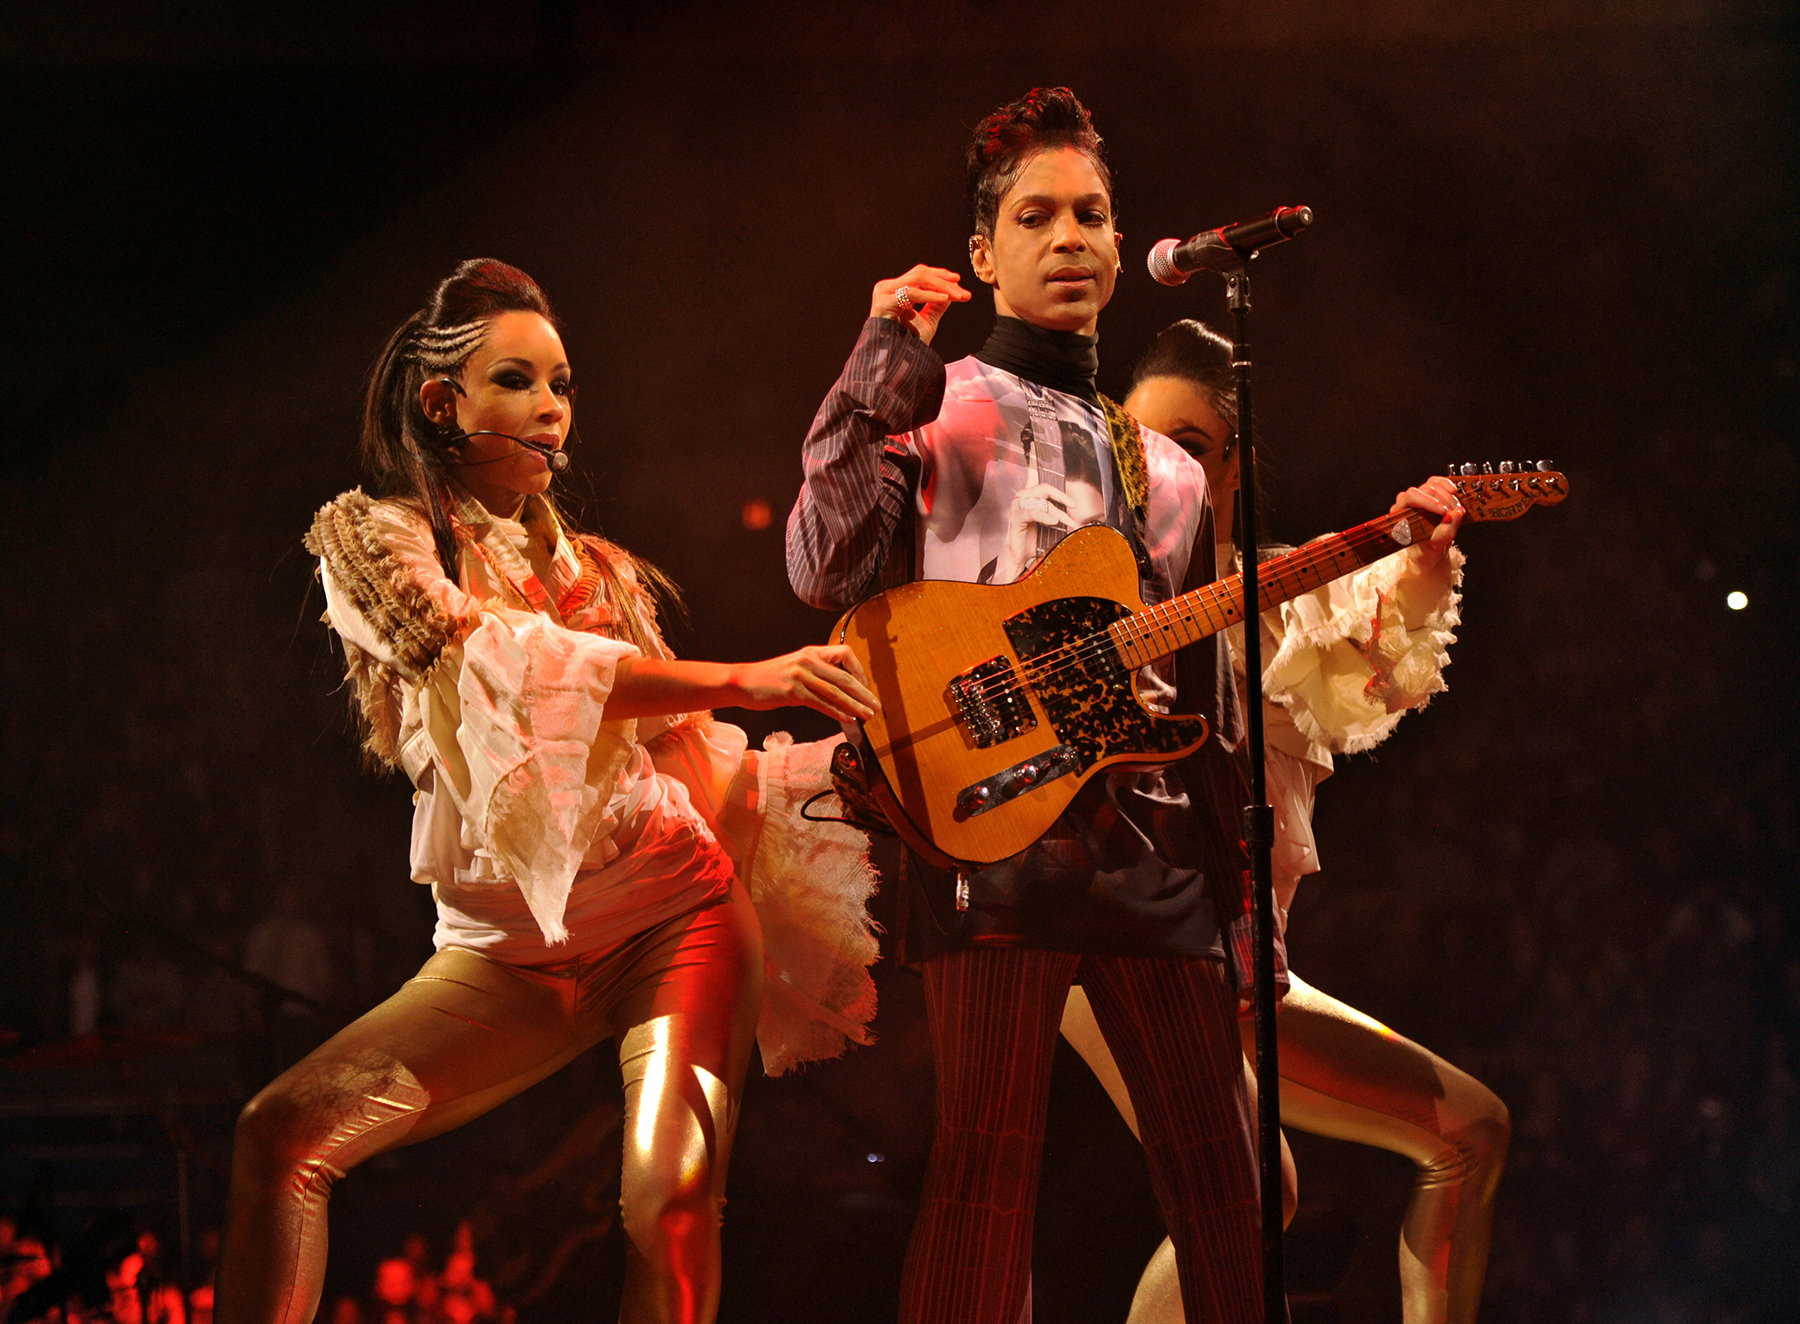 """Prince performs during his """"Welcome 2 America"""" tour at Madison Square Garden on January 18, 2011 in New York City."""